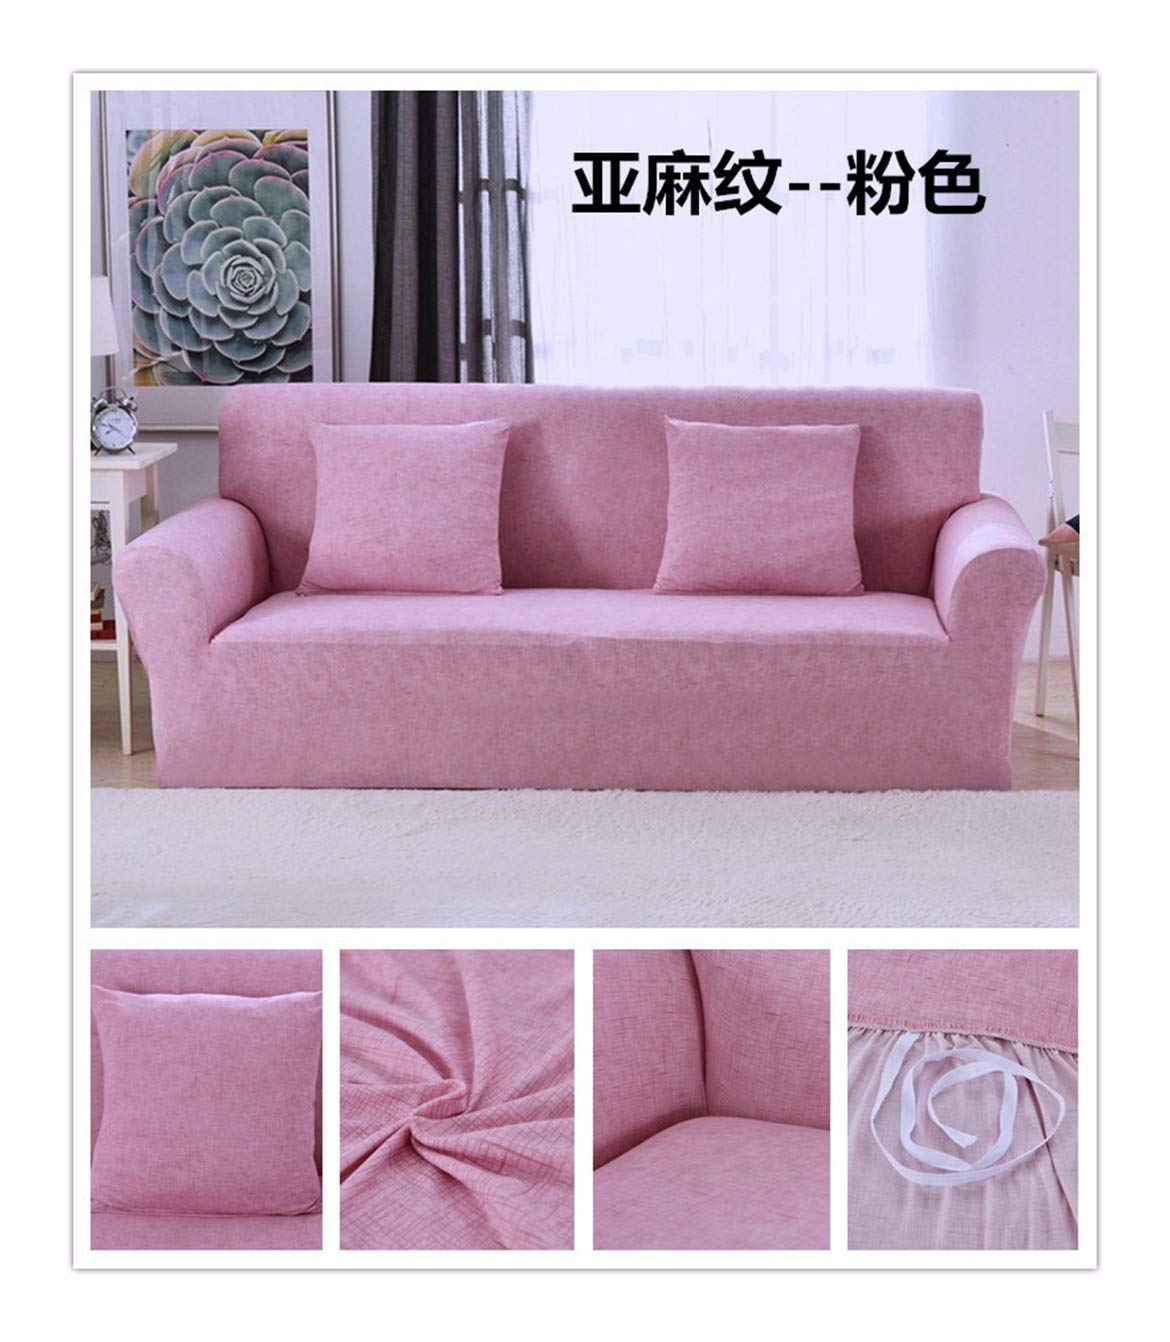 4seat VGUYFUYH Pink Anti-Skid Sofa Cover Polyester Full Package Elasticity Household Omnipotent Sofa Cover Simple Fashion One Piece Durable Dustproof Pet Dog Predective Cover,4Seat